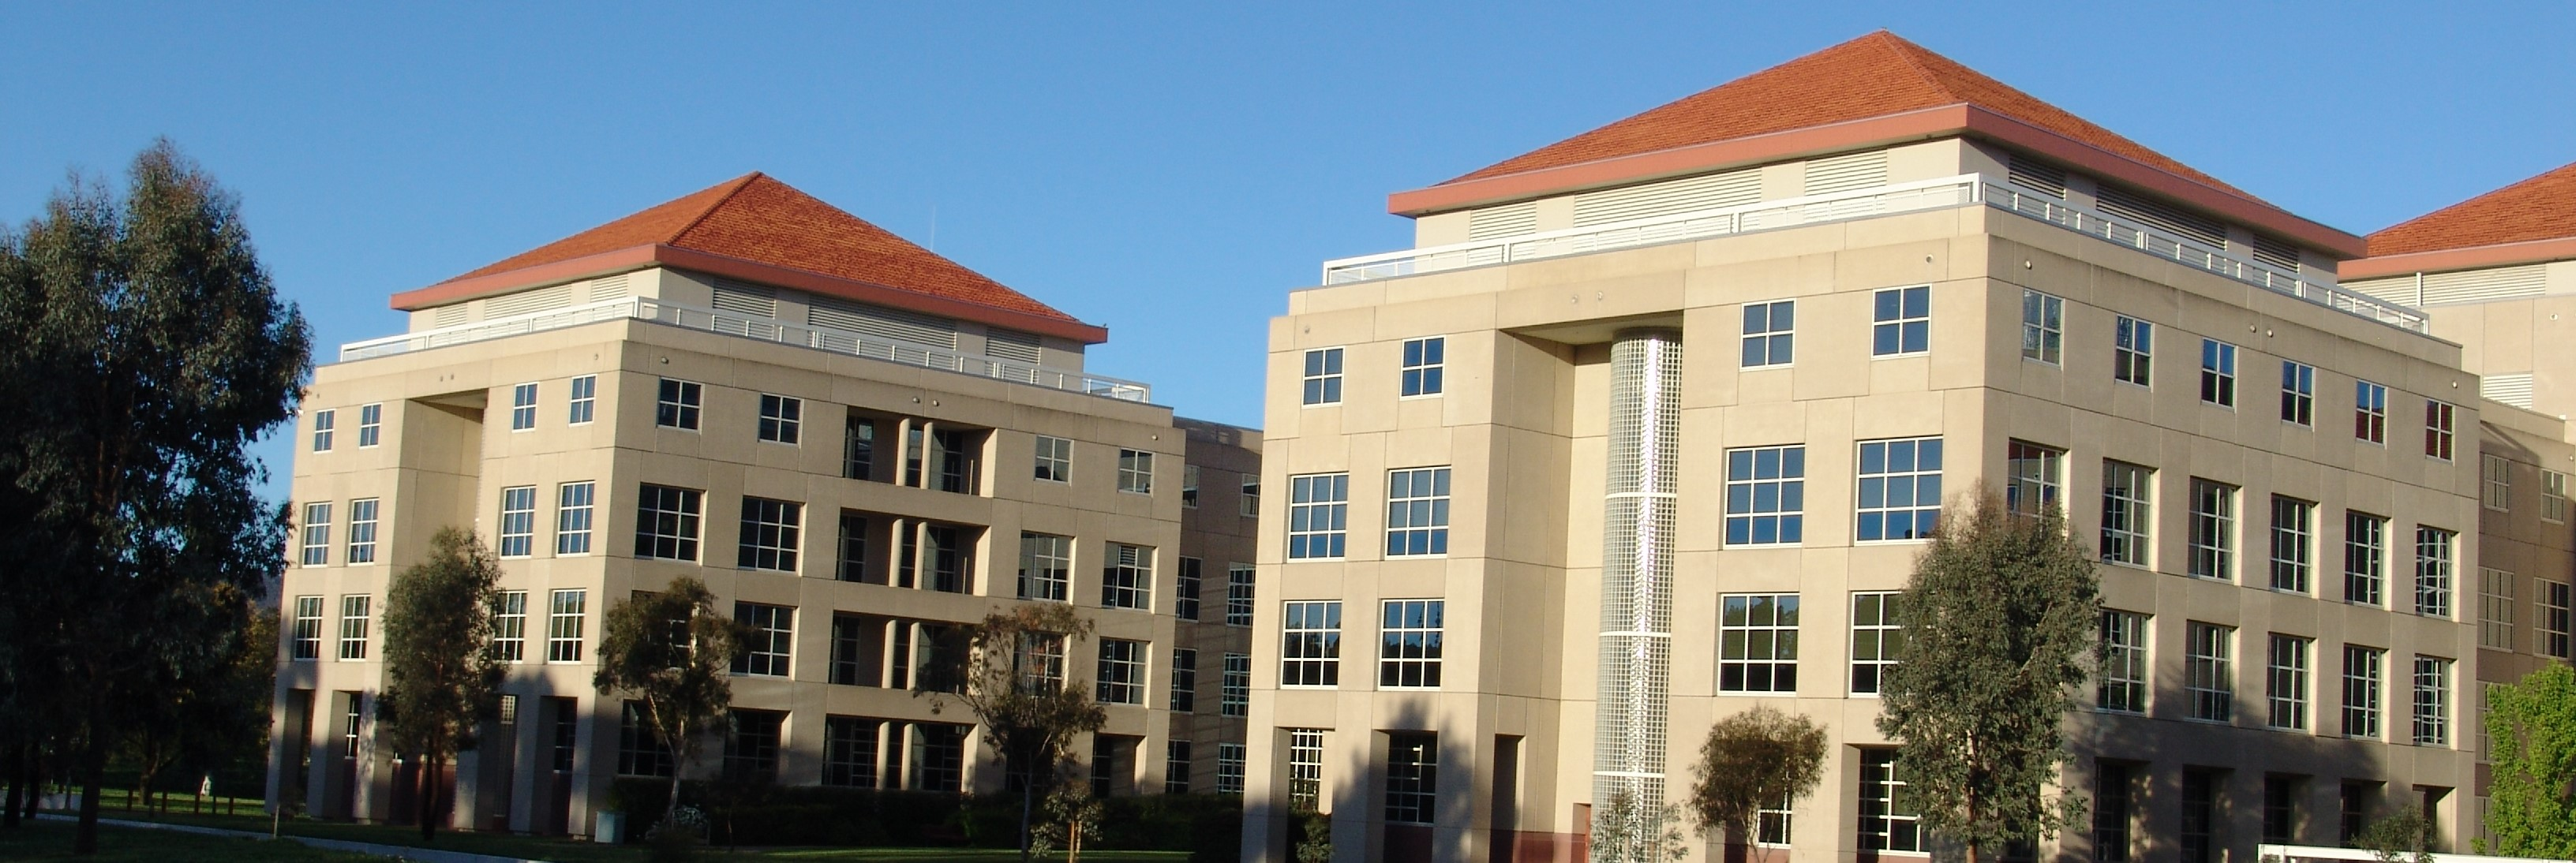 The R G Casey Building, which houses the Department of Foreign Affairs and Trade (Photo: Bentley Smith/Flickr)